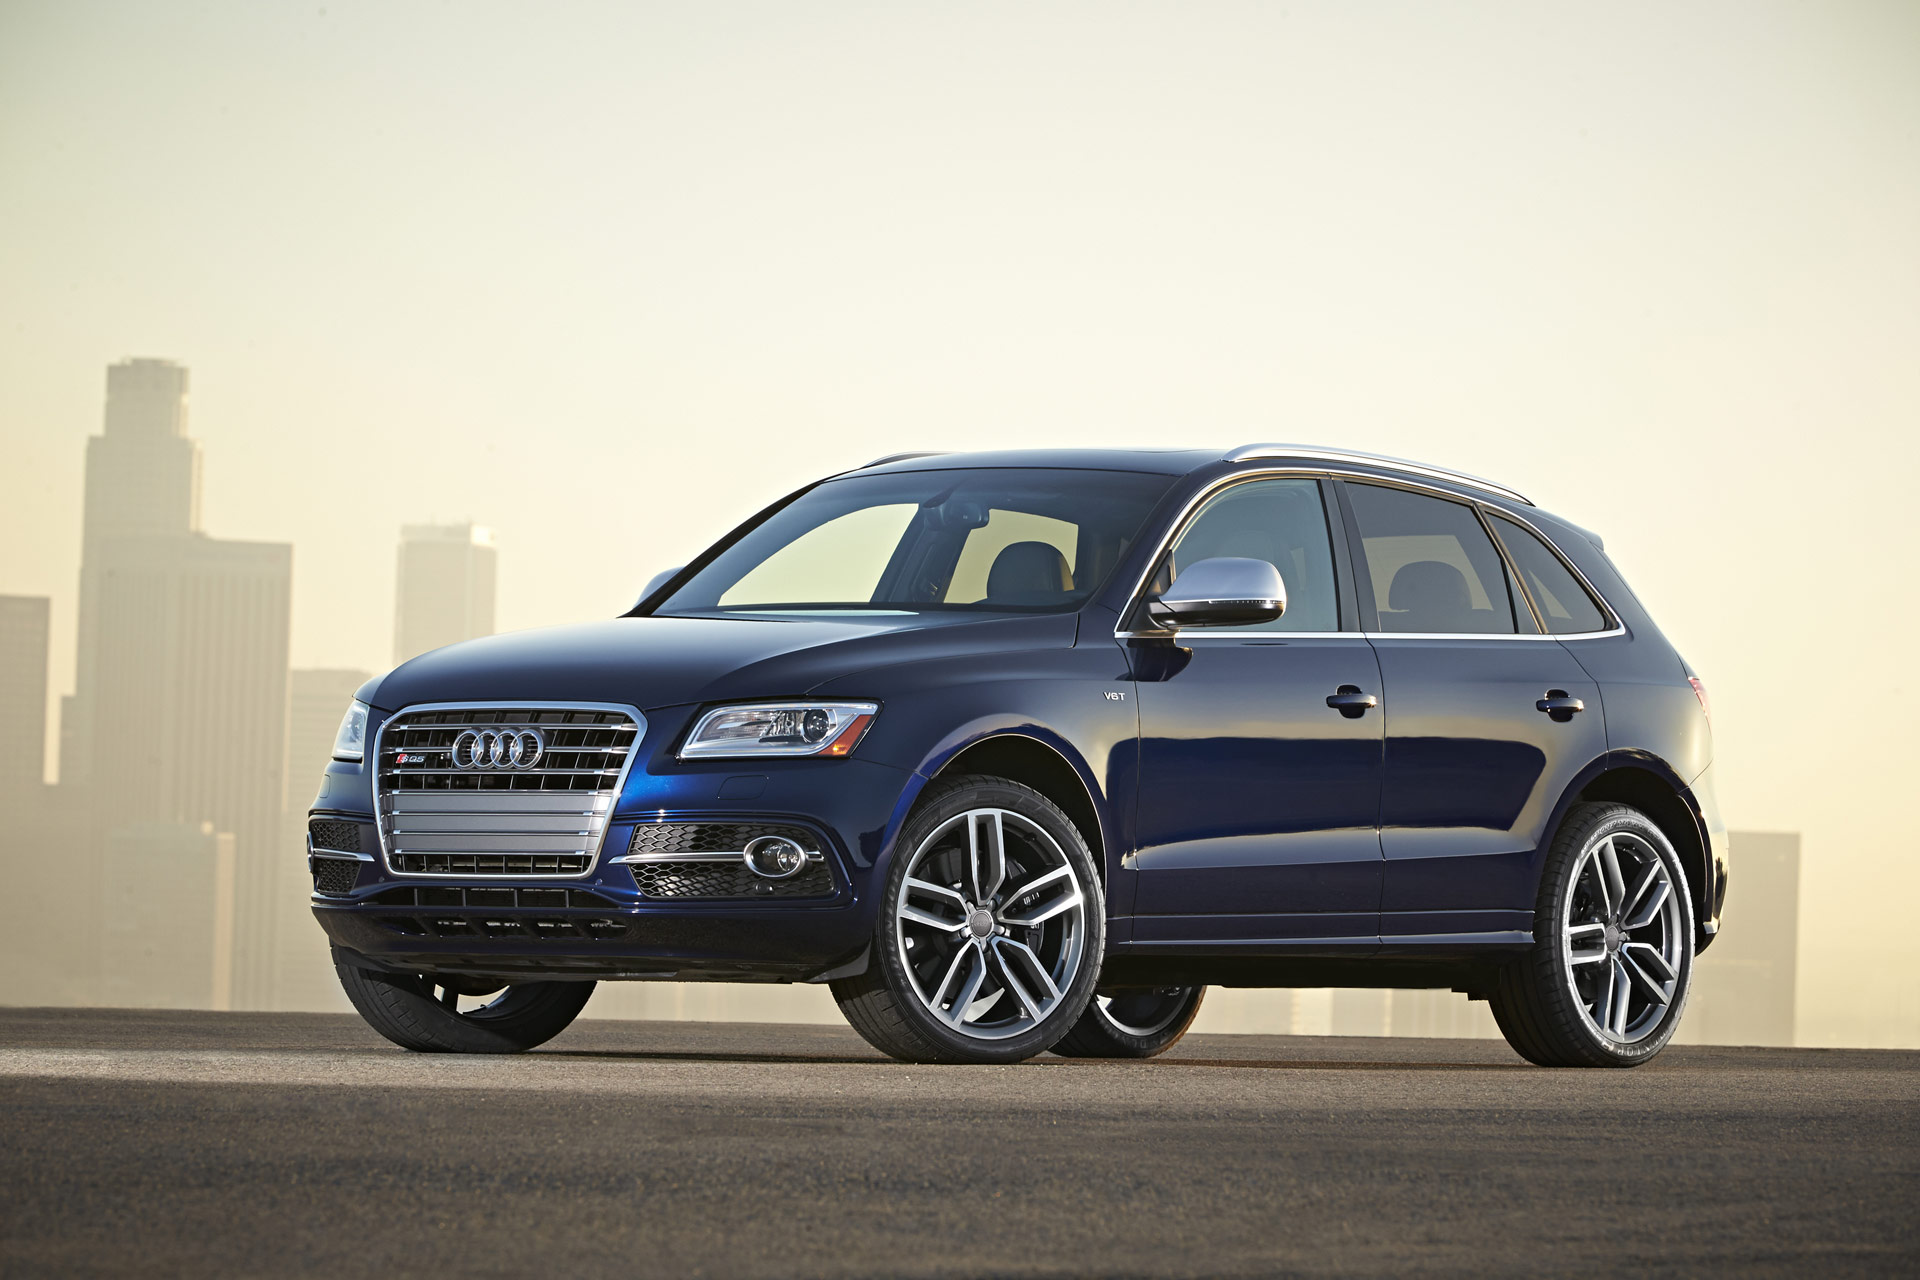 2014 Audi Q5 News and Information, Research, and History